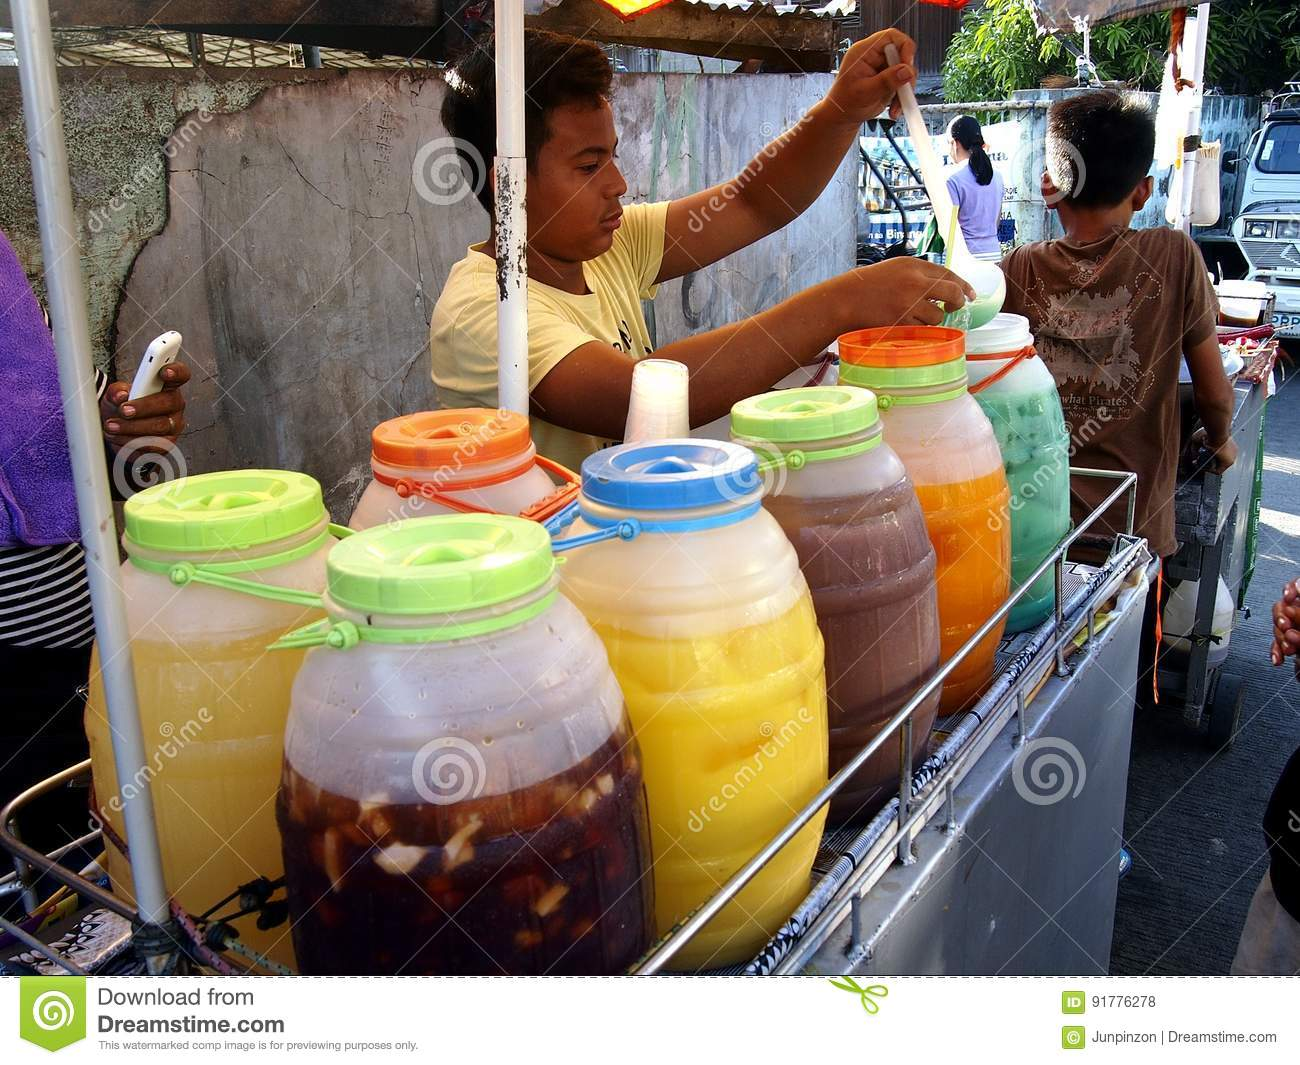 A street vendor sells a variety of fruit juice and other refreshments on his beverage cart at a street in Antipolo City.